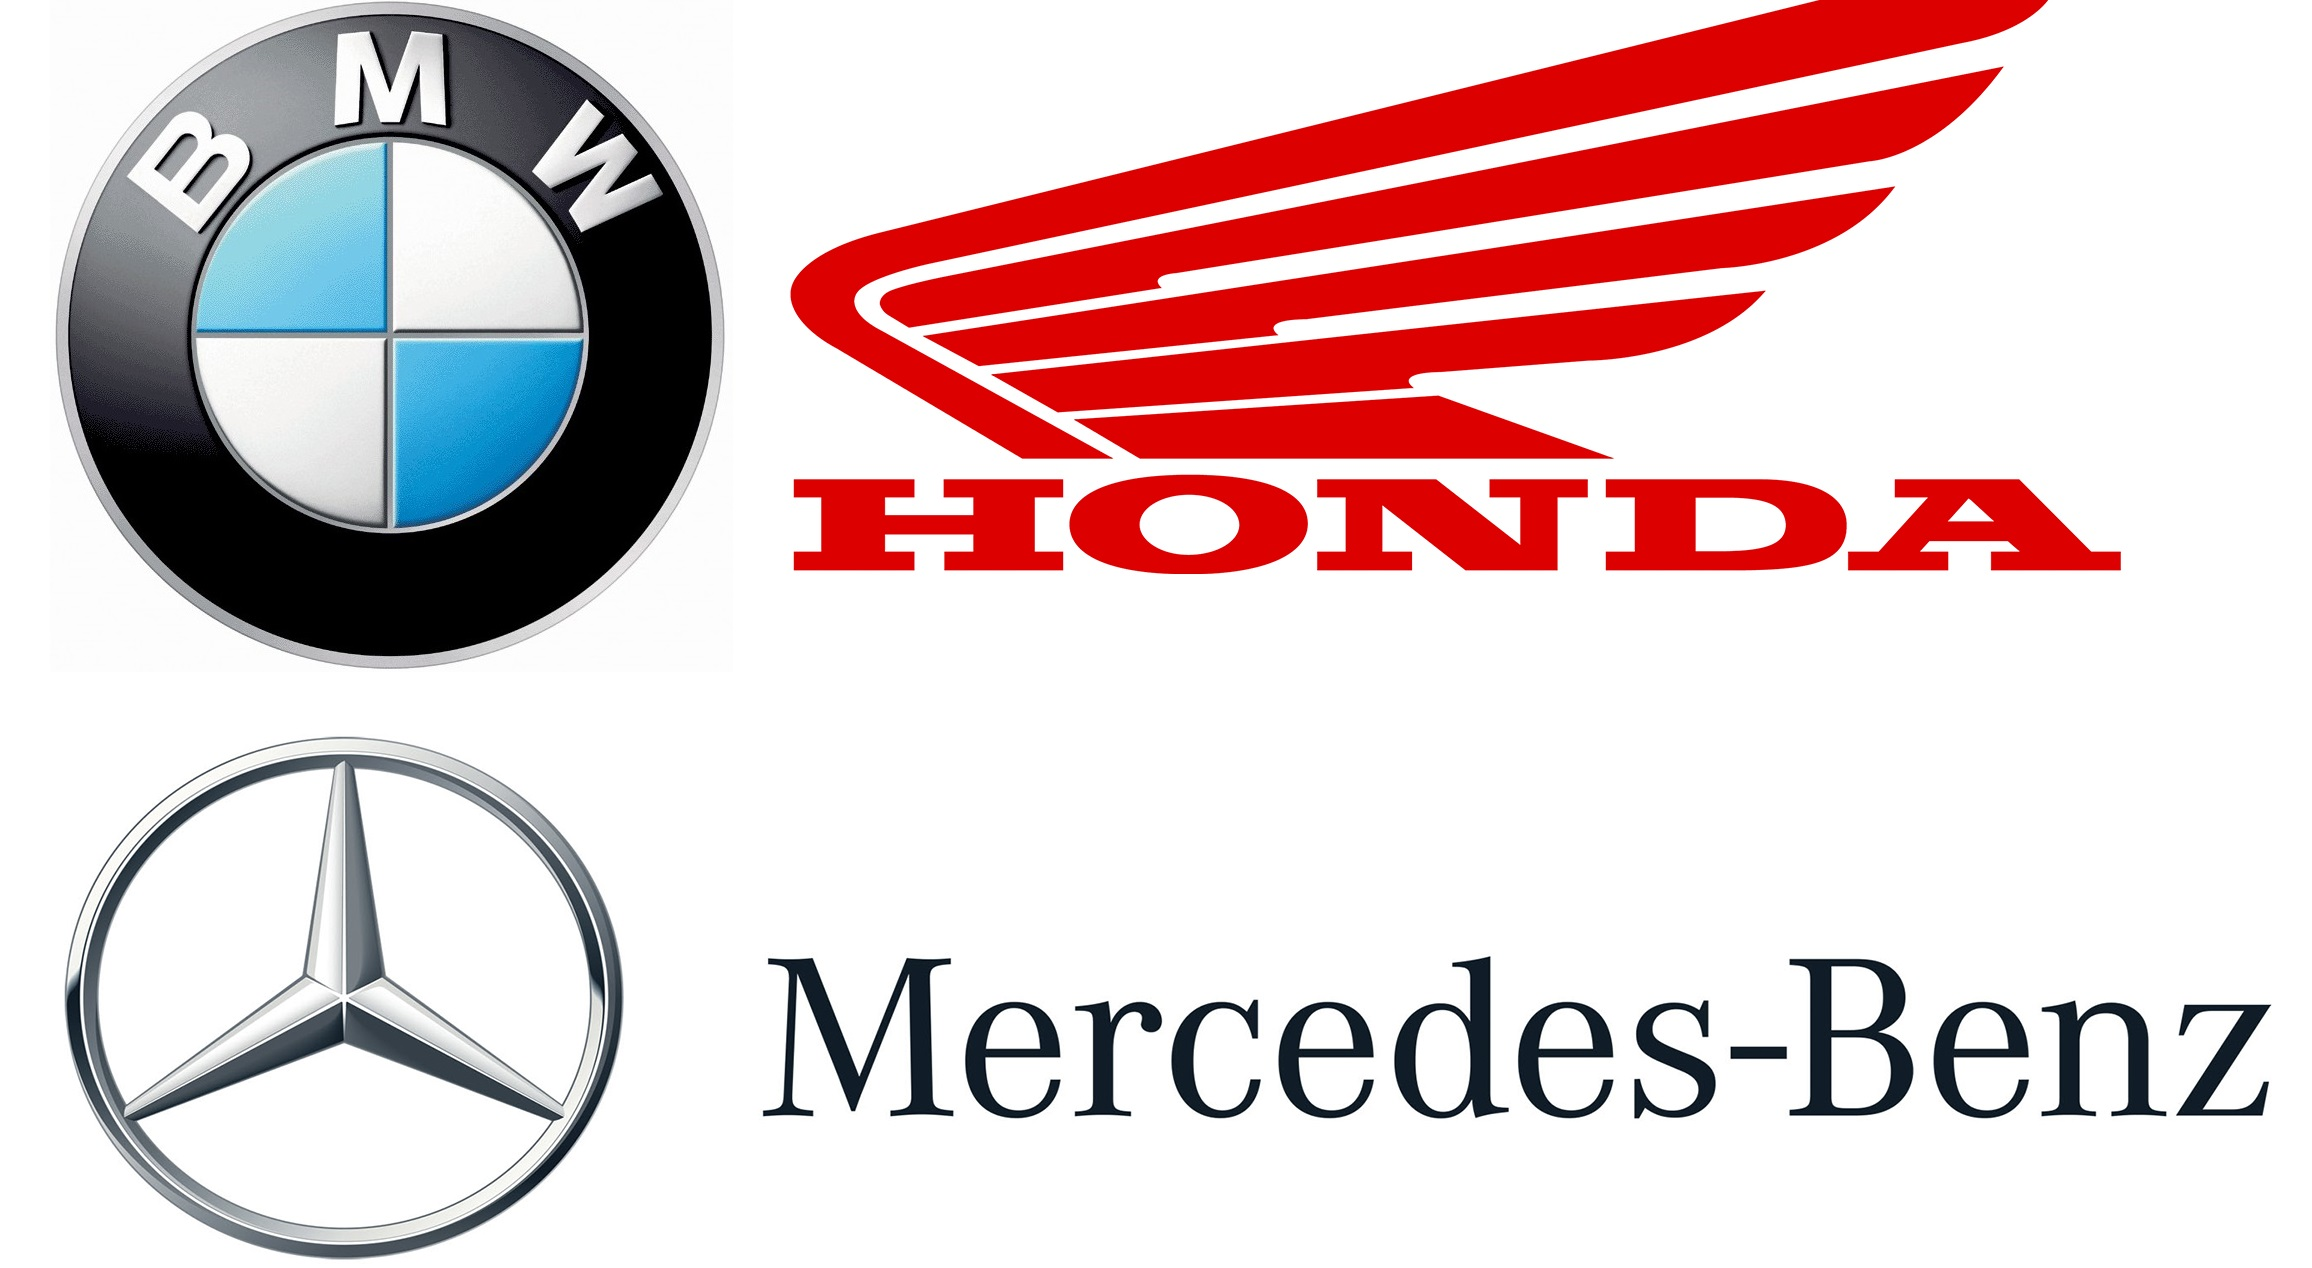 ����� BMW X3, Honda Civic Type-R � Mercedes-Benz S �����. ��������� ���� ����